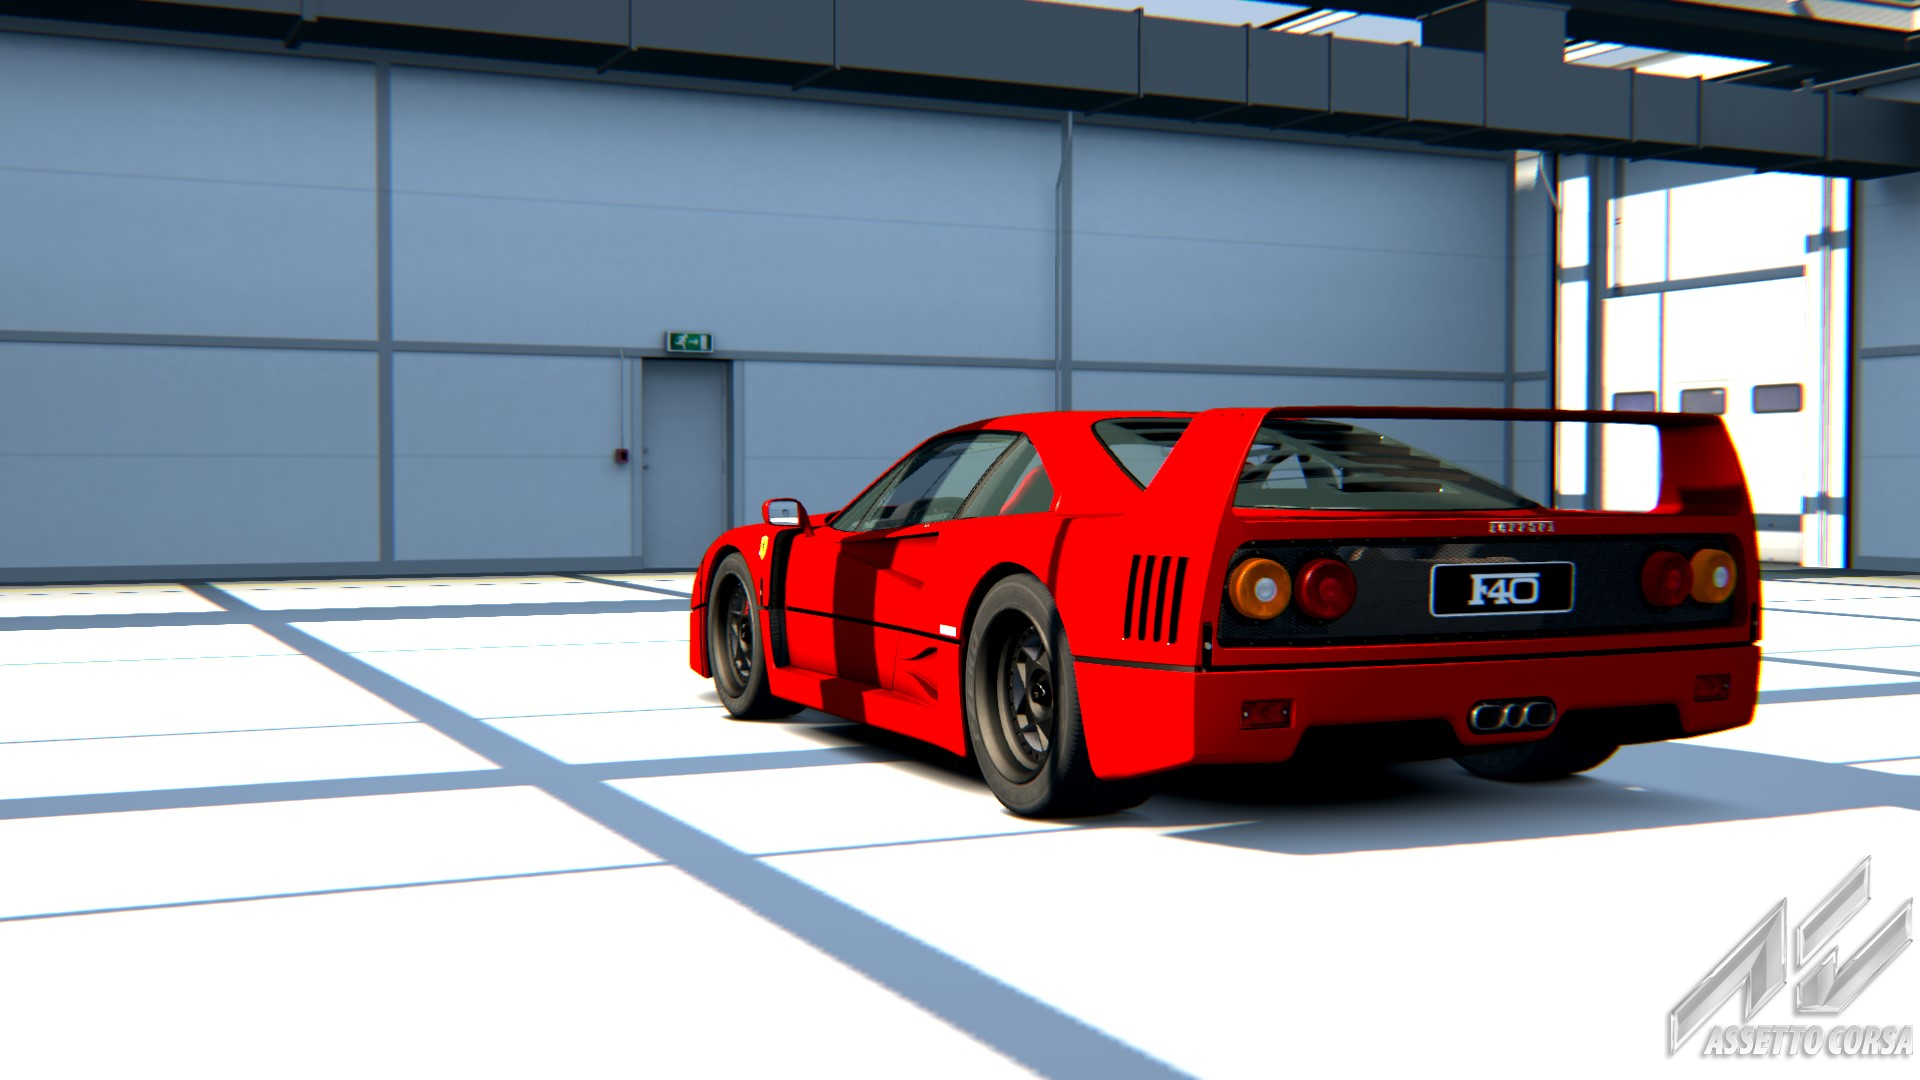 Showroom_ferrari_f40_s3_27-3-2015-14-50-36.jpg